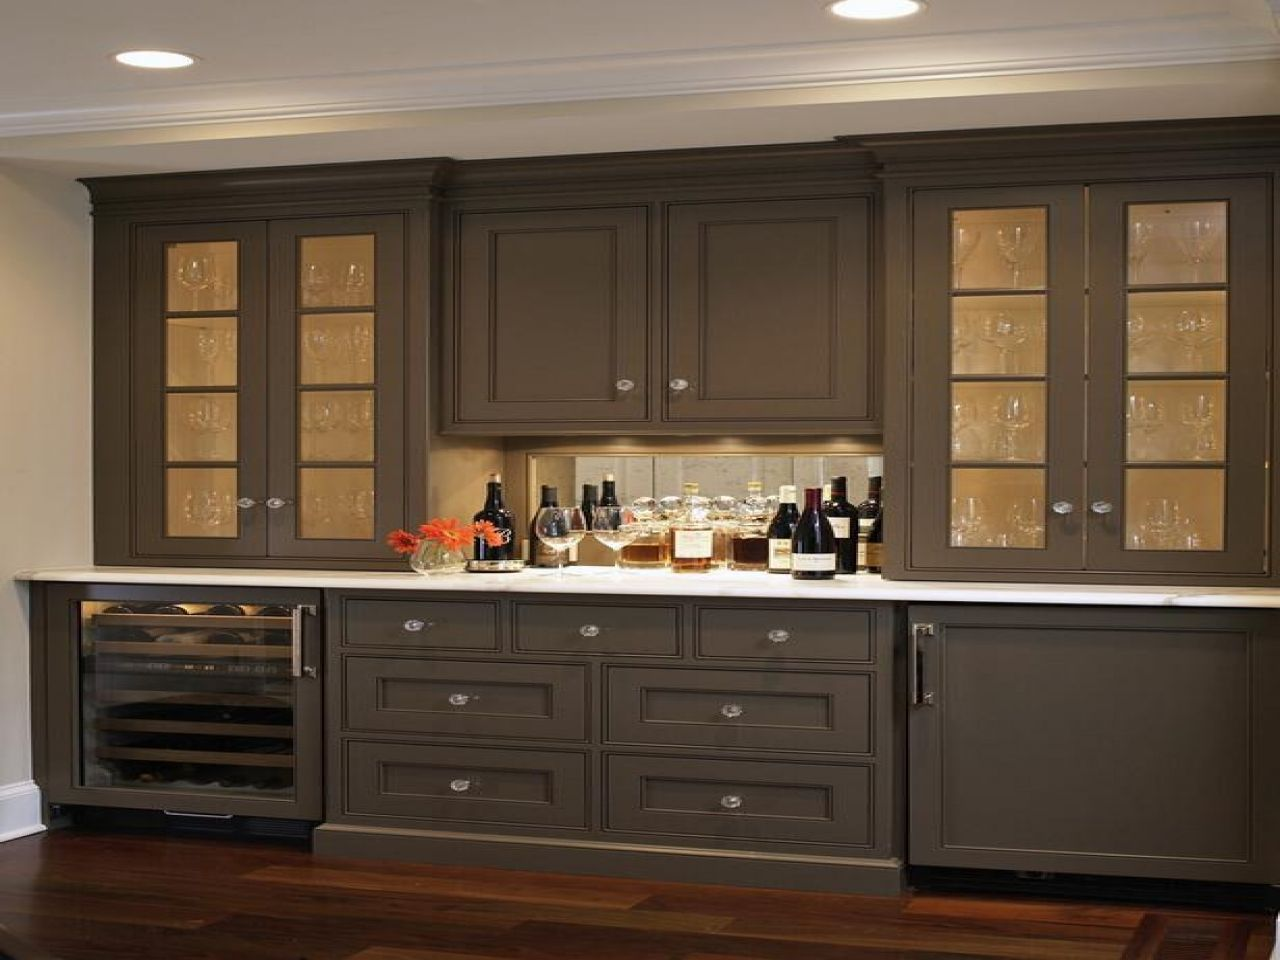 Built In Kitchen Cabinets Range With Downdraft Ventilation Idea For Dining Room Cabinet Wall Ideas